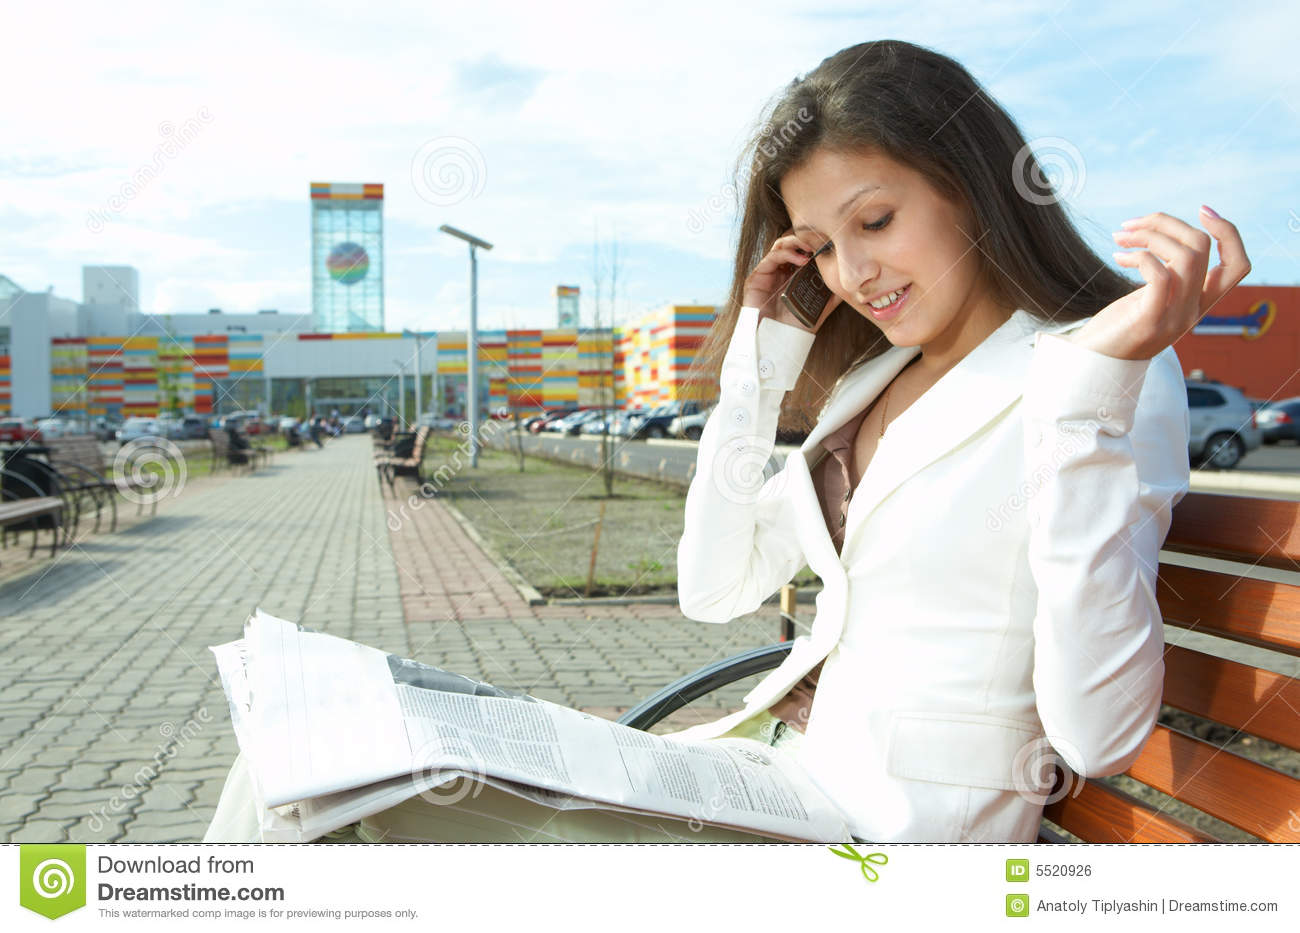 Woman Reading The Newspaper Royalty Free Stock Image - Image: 5520926